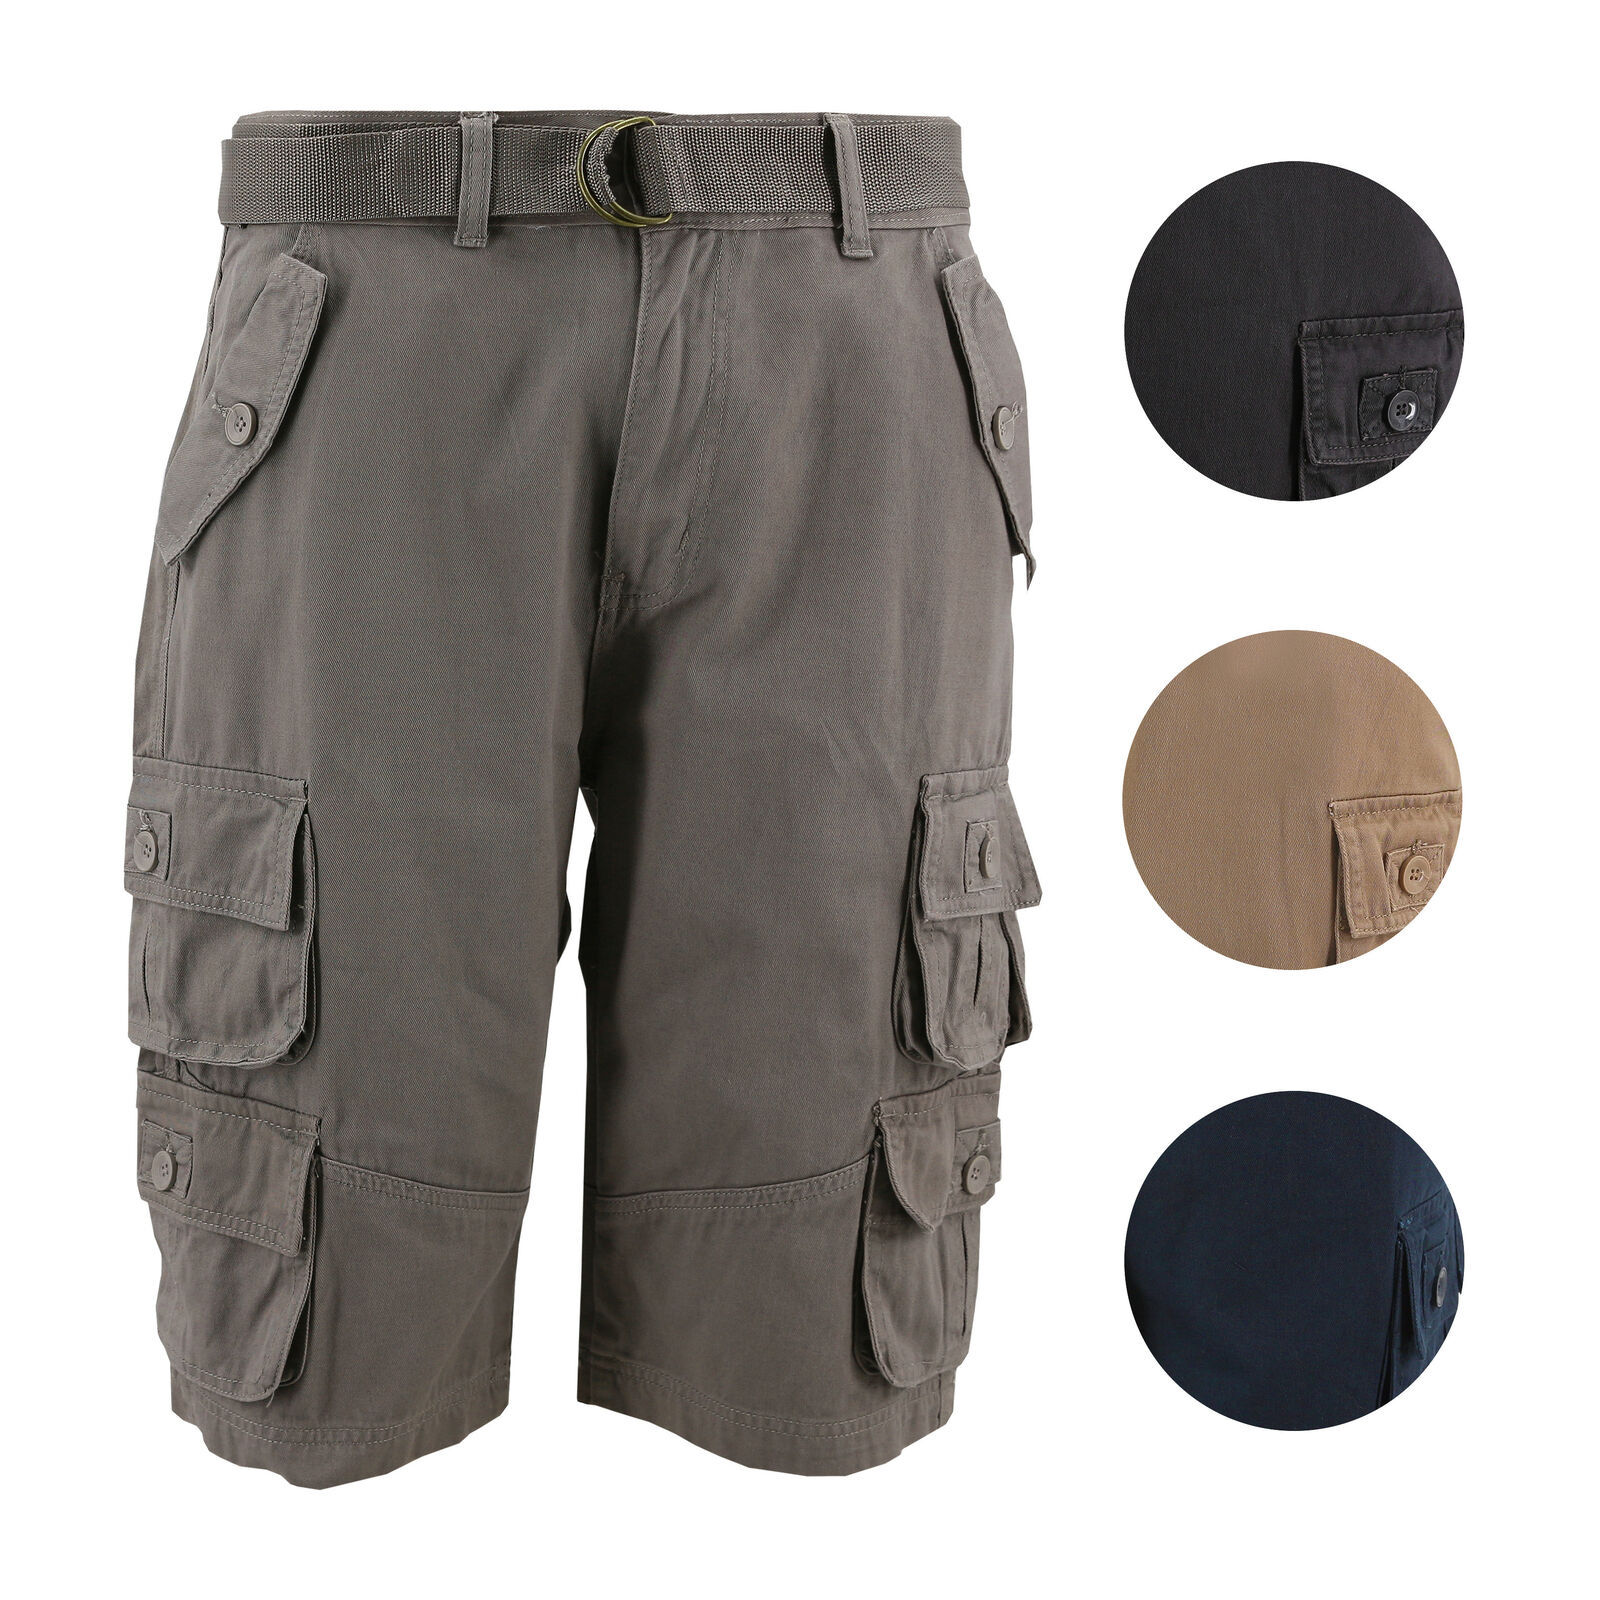 Men's Relaxed Fit Cotton Belted Cargo Shorts With Multiple Button Flap Pockets